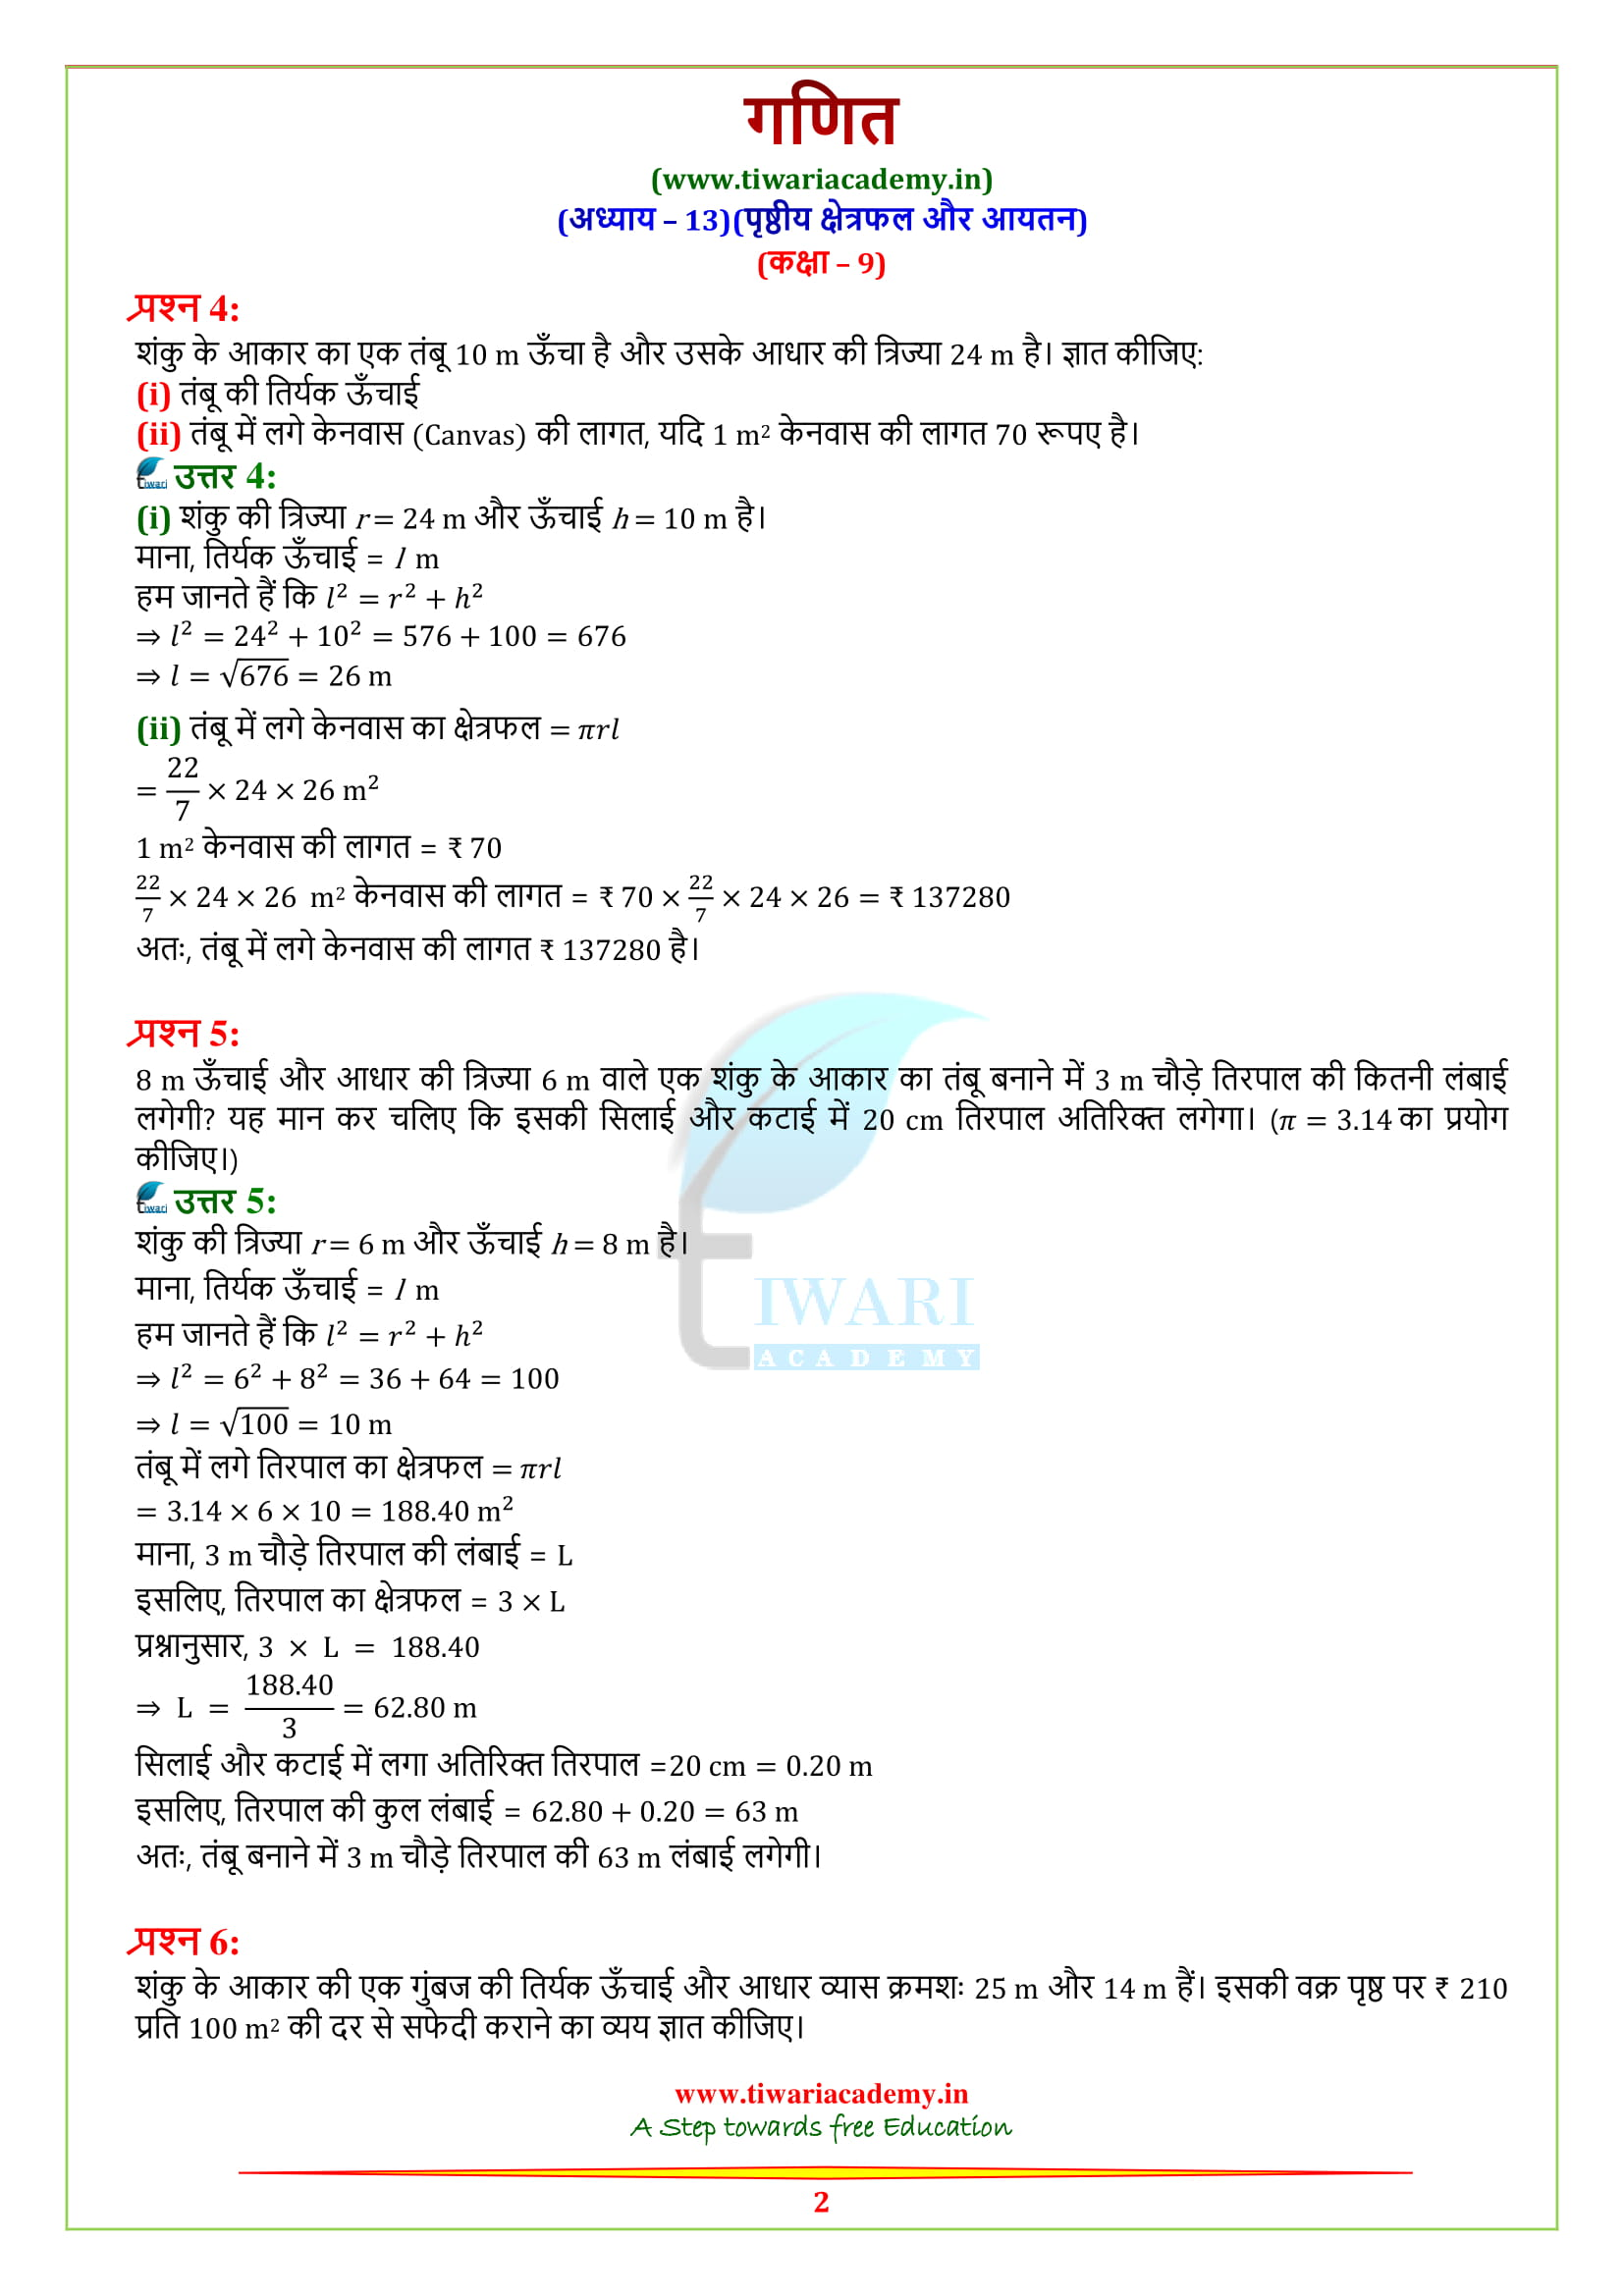 NCERT Solutions for class 9 Exercise 13.3 for high school mp, up board